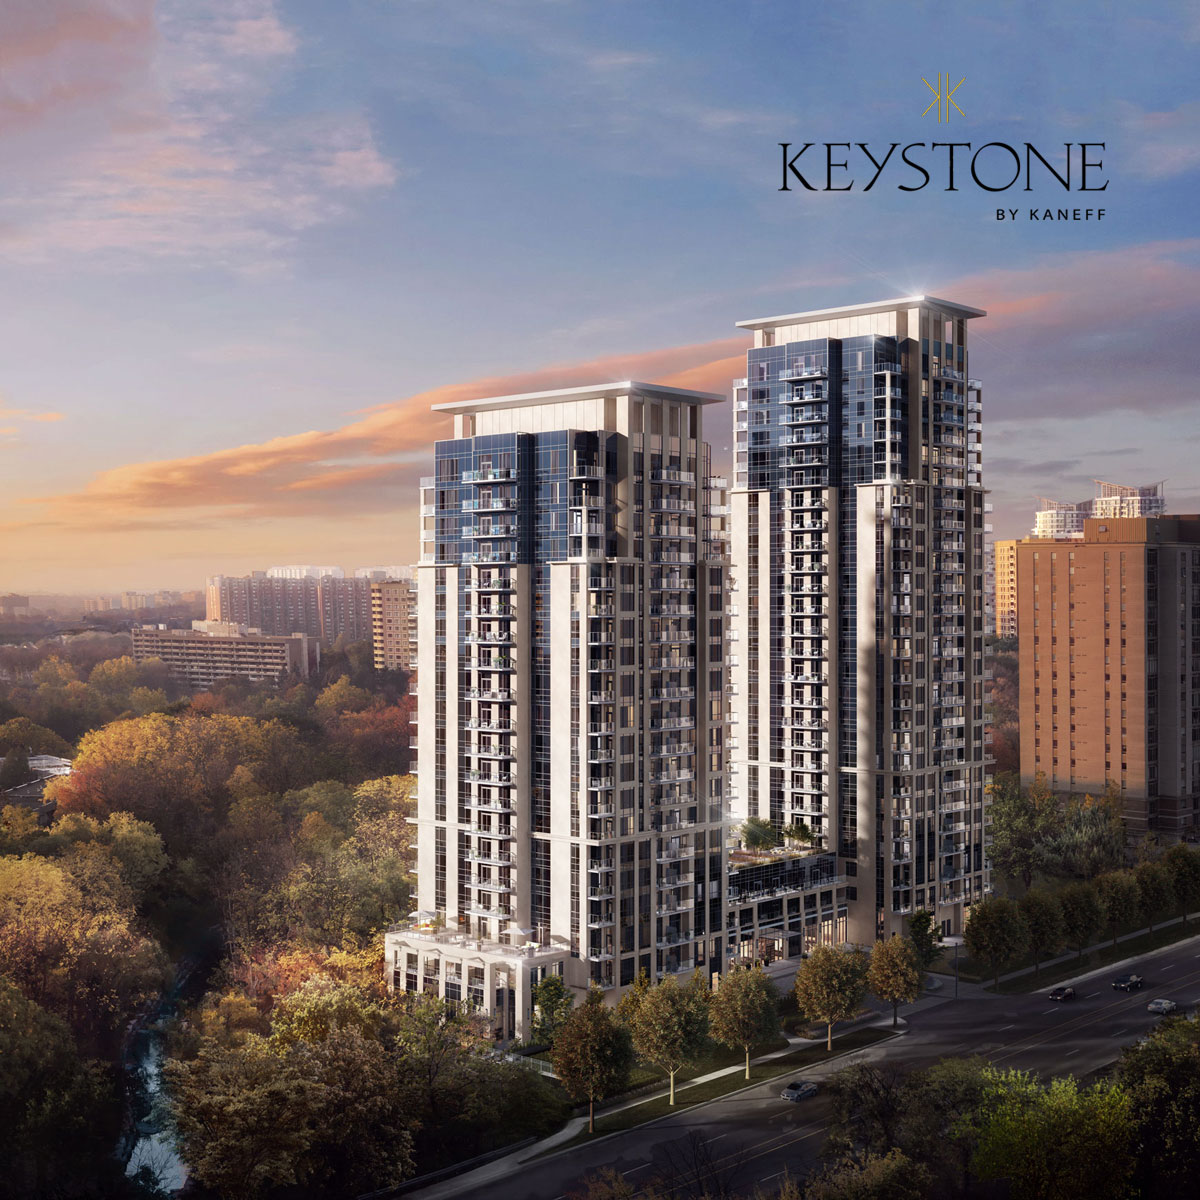 Keystone by Kaneff